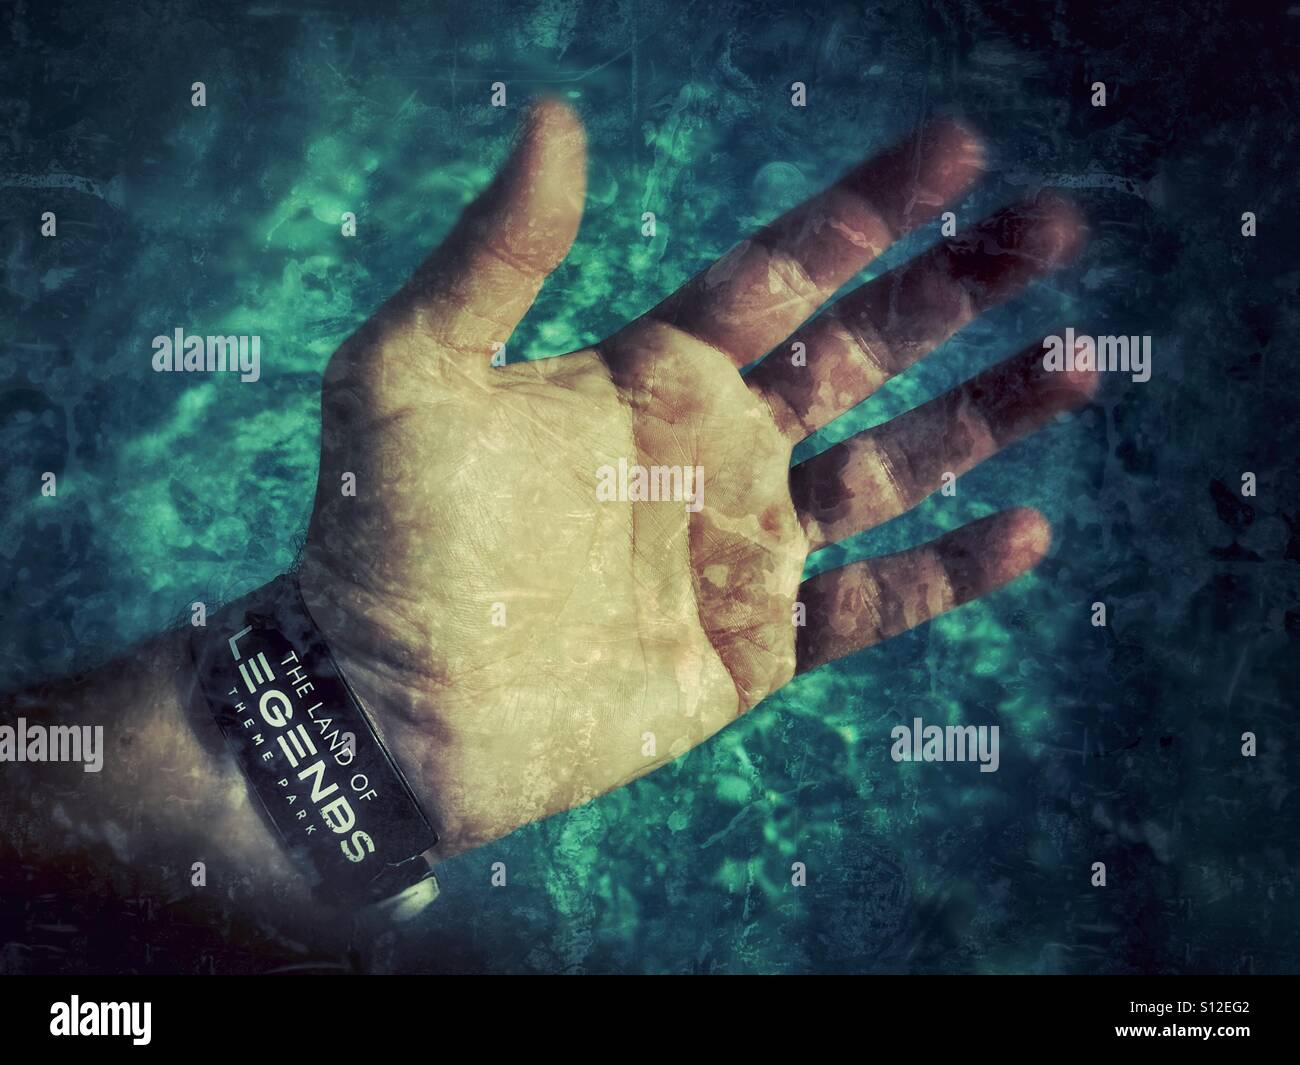 Outstretched Hand with Land of Legends Theme Park Entry Wristband on against a Watery Background. Stock Photo